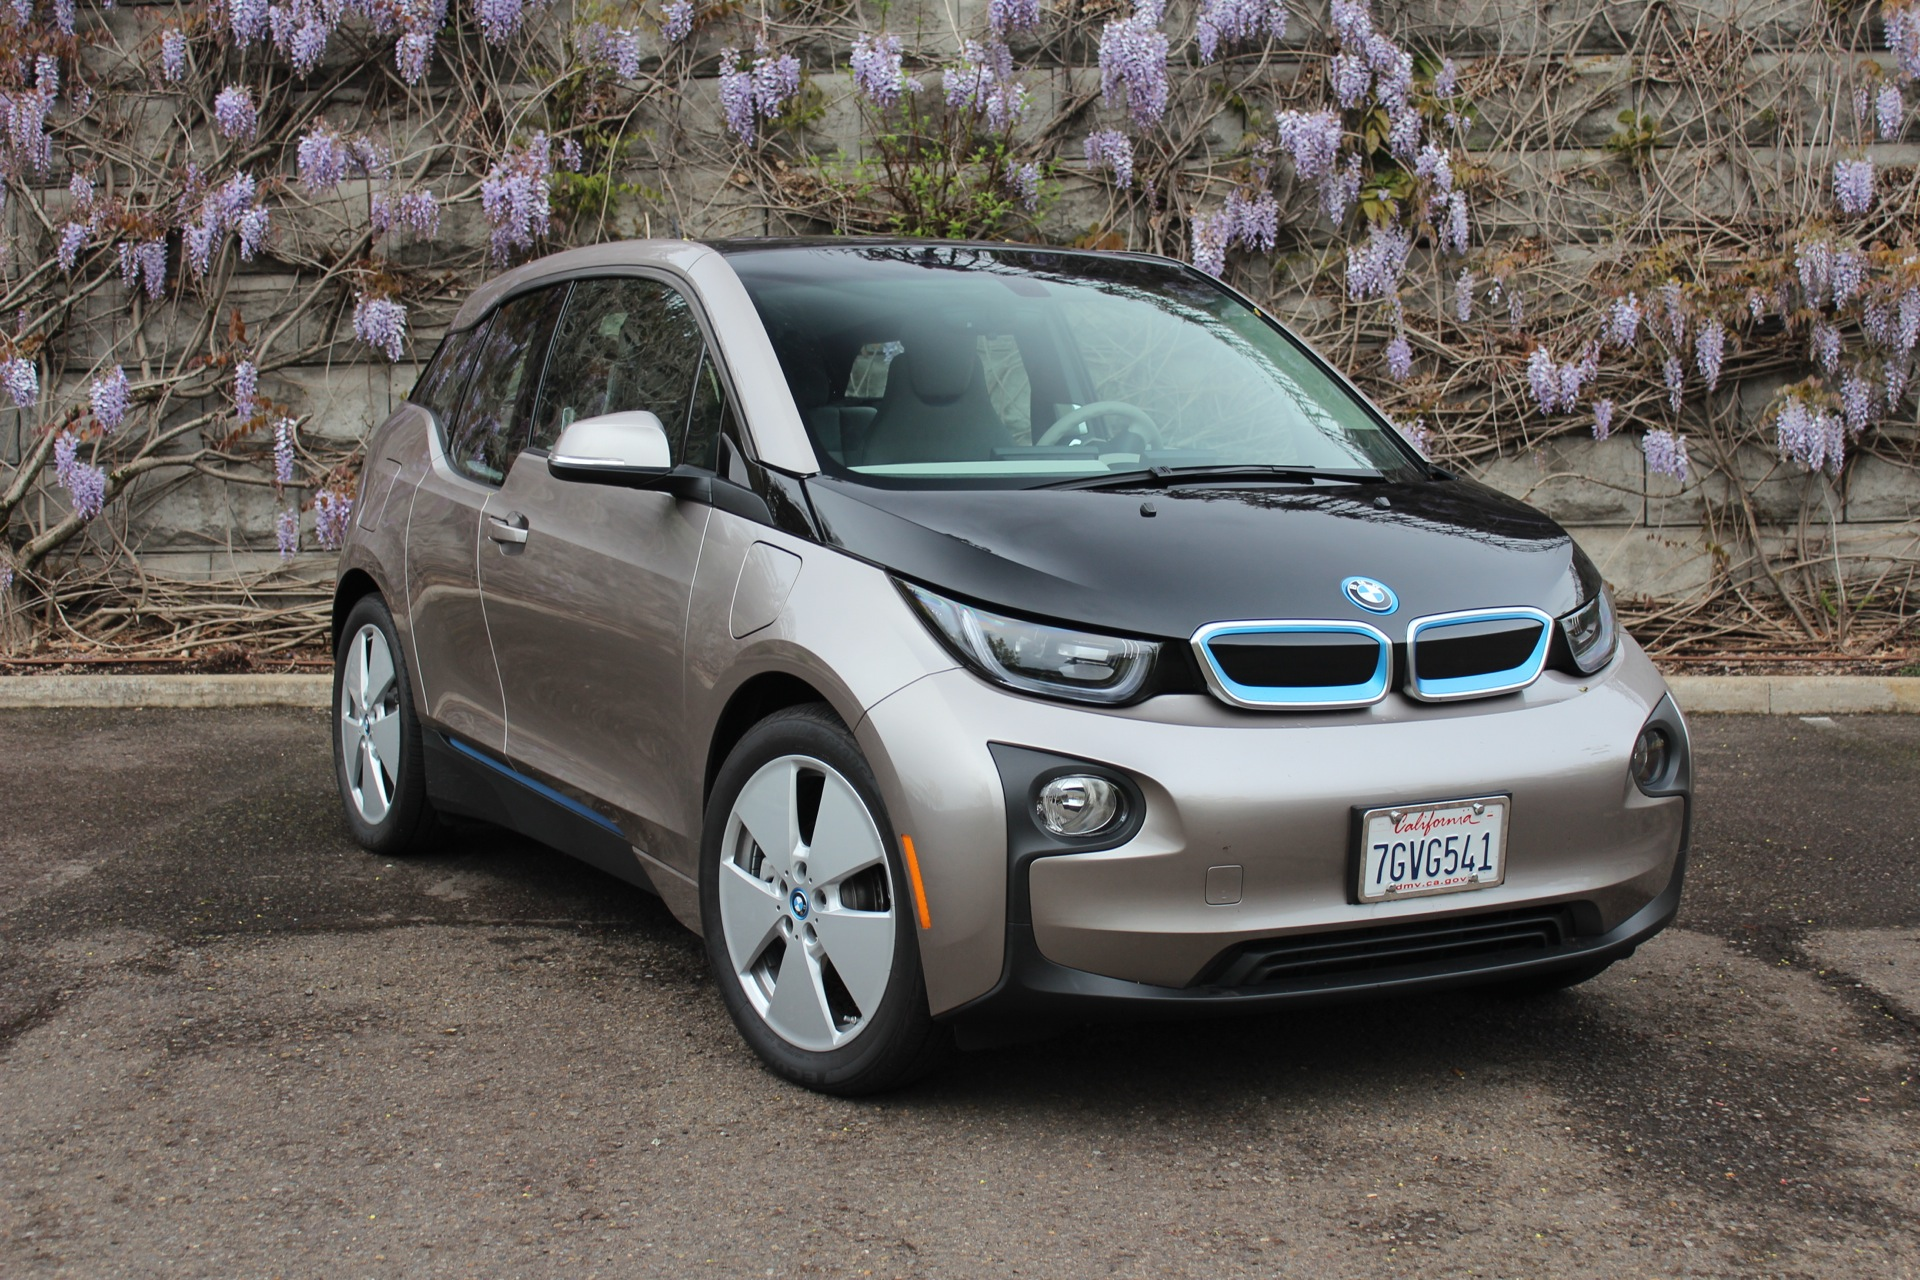 bmw i3 electric car quirk no am radio offered but why update. Black Bedroom Furniture Sets. Home Design Ideas